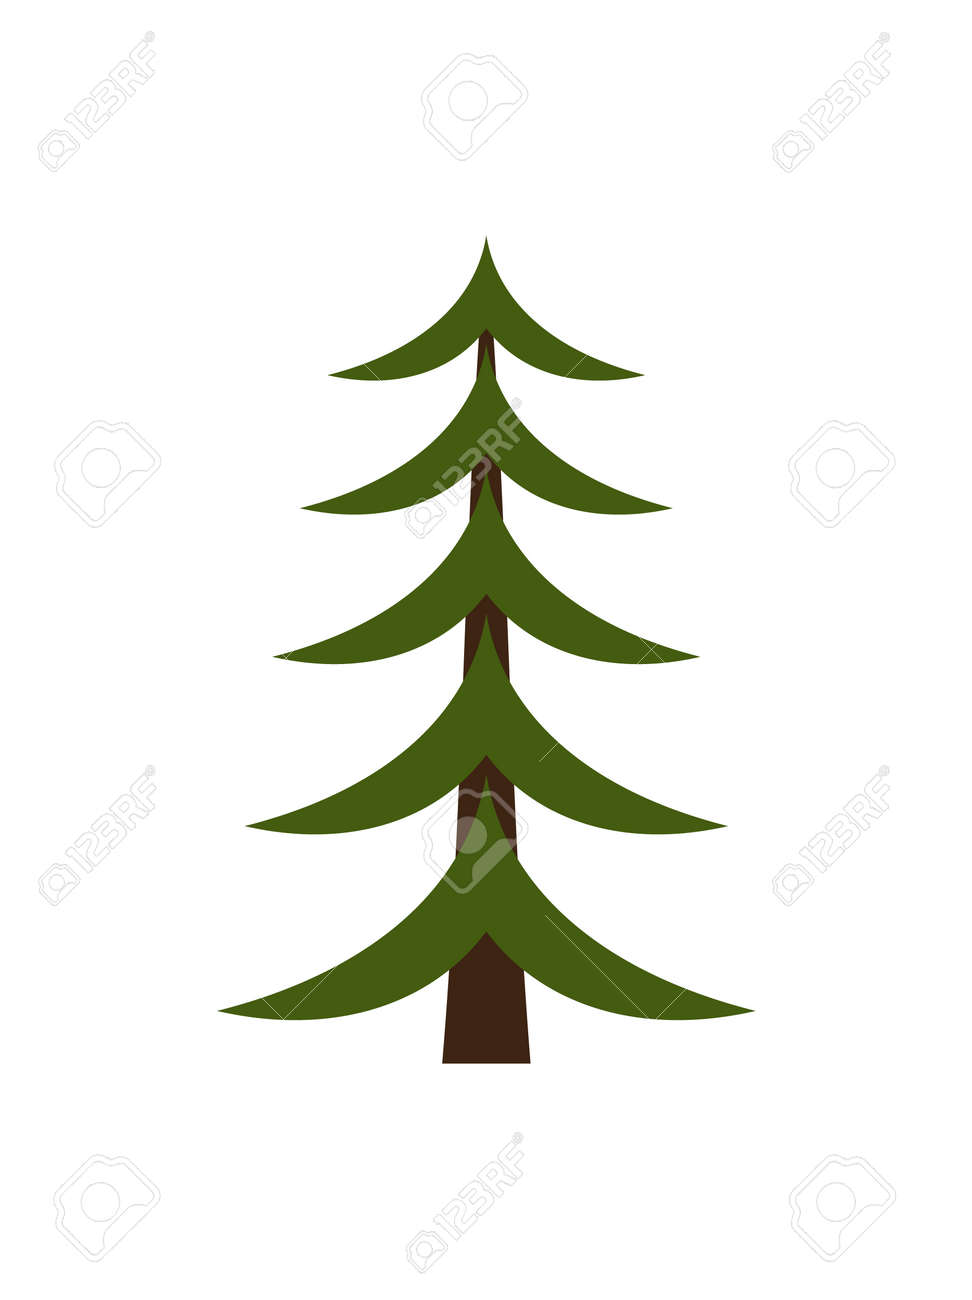 Image Of Christmas Tree Represented In Schematic Way, Minimalistic on tree roots silhouette, tree box, tree trench, tree switch, tree anatomy, tree display, tree 3d, tree graph, tree cable, tree wire, tree diagram, tree guide, tree cell, tree blueprint, tree photograph, tree visualization, tree chart, tree maintenance, tree project, tree tutorial,